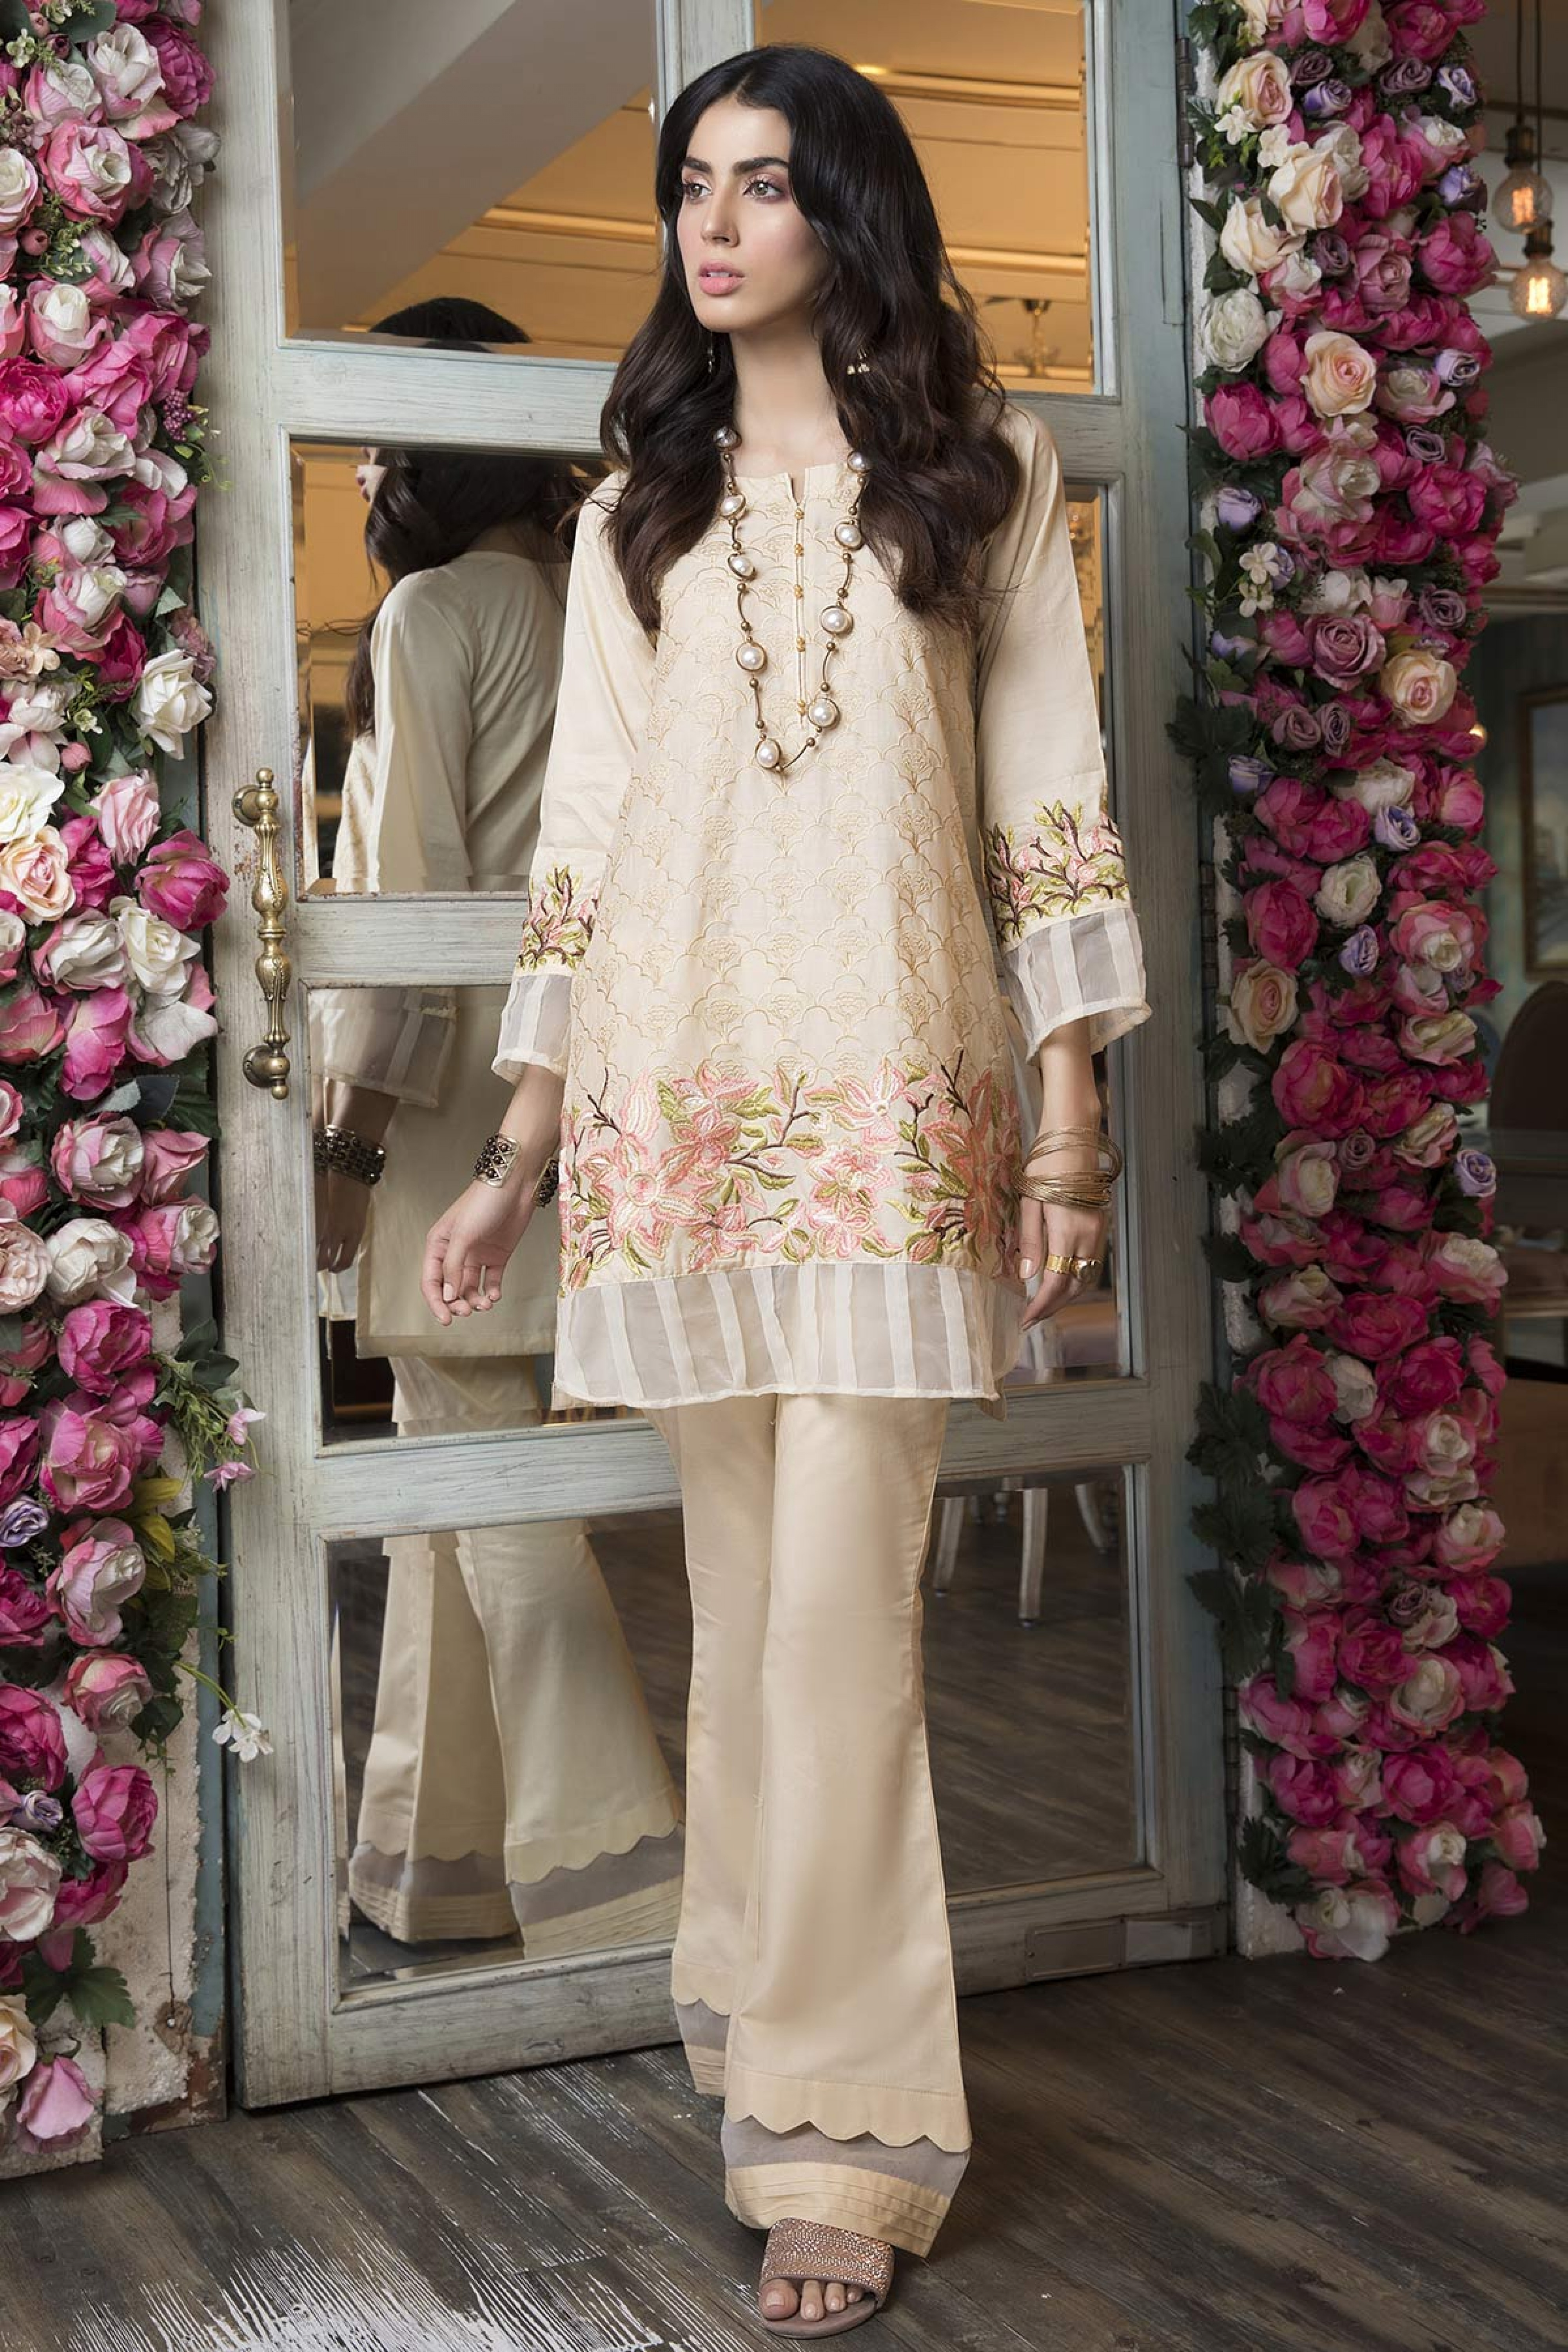 FLORAL FANTASY (EMBROIDERED SHIRT & TROUSER )